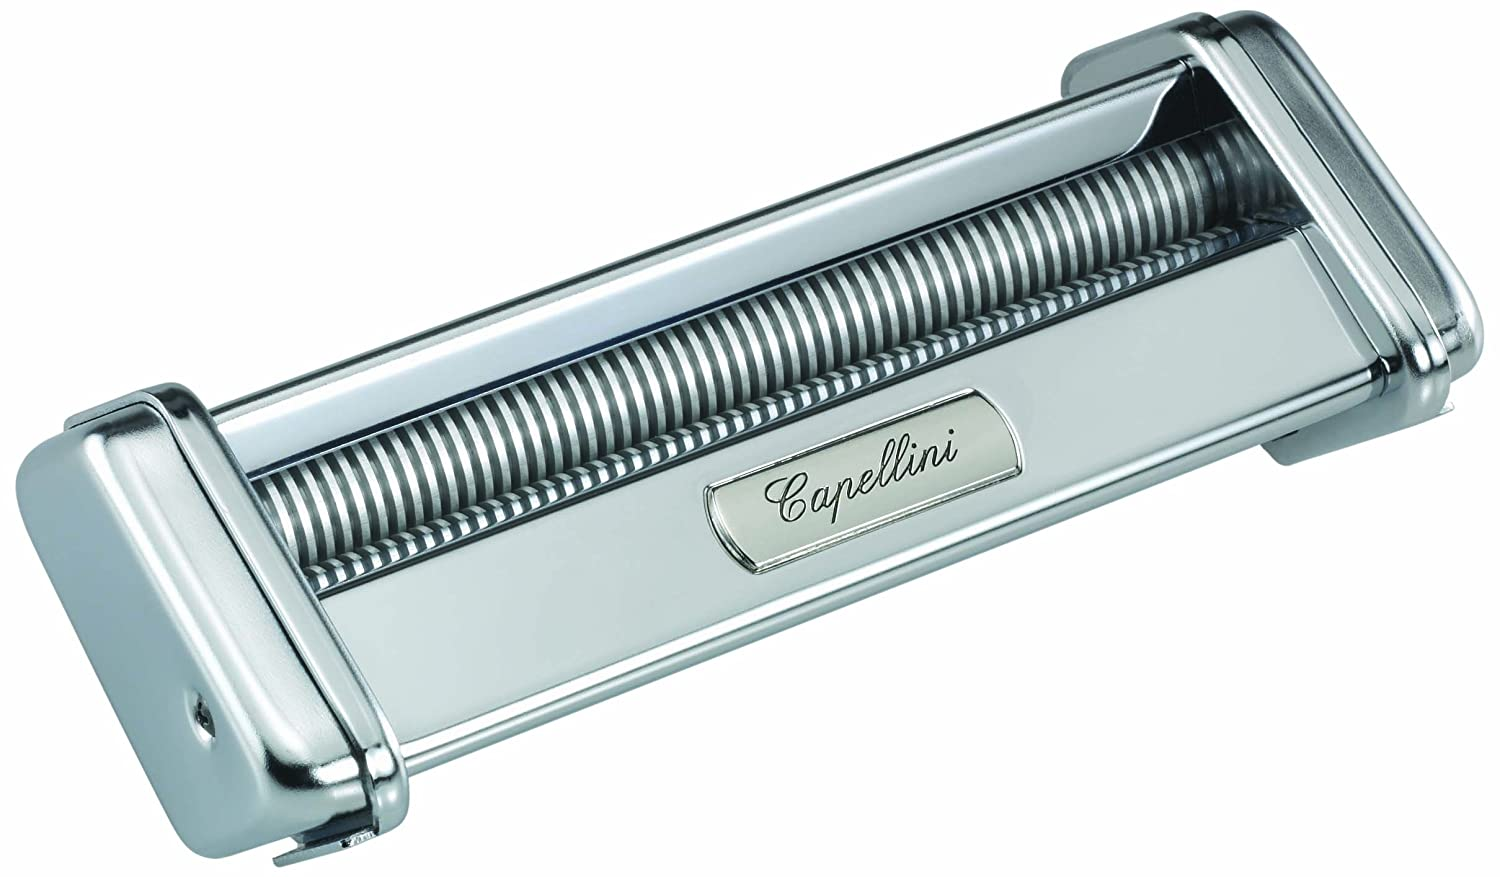 Marcato 73211 Pasta Cutter for Atlas 150 073211